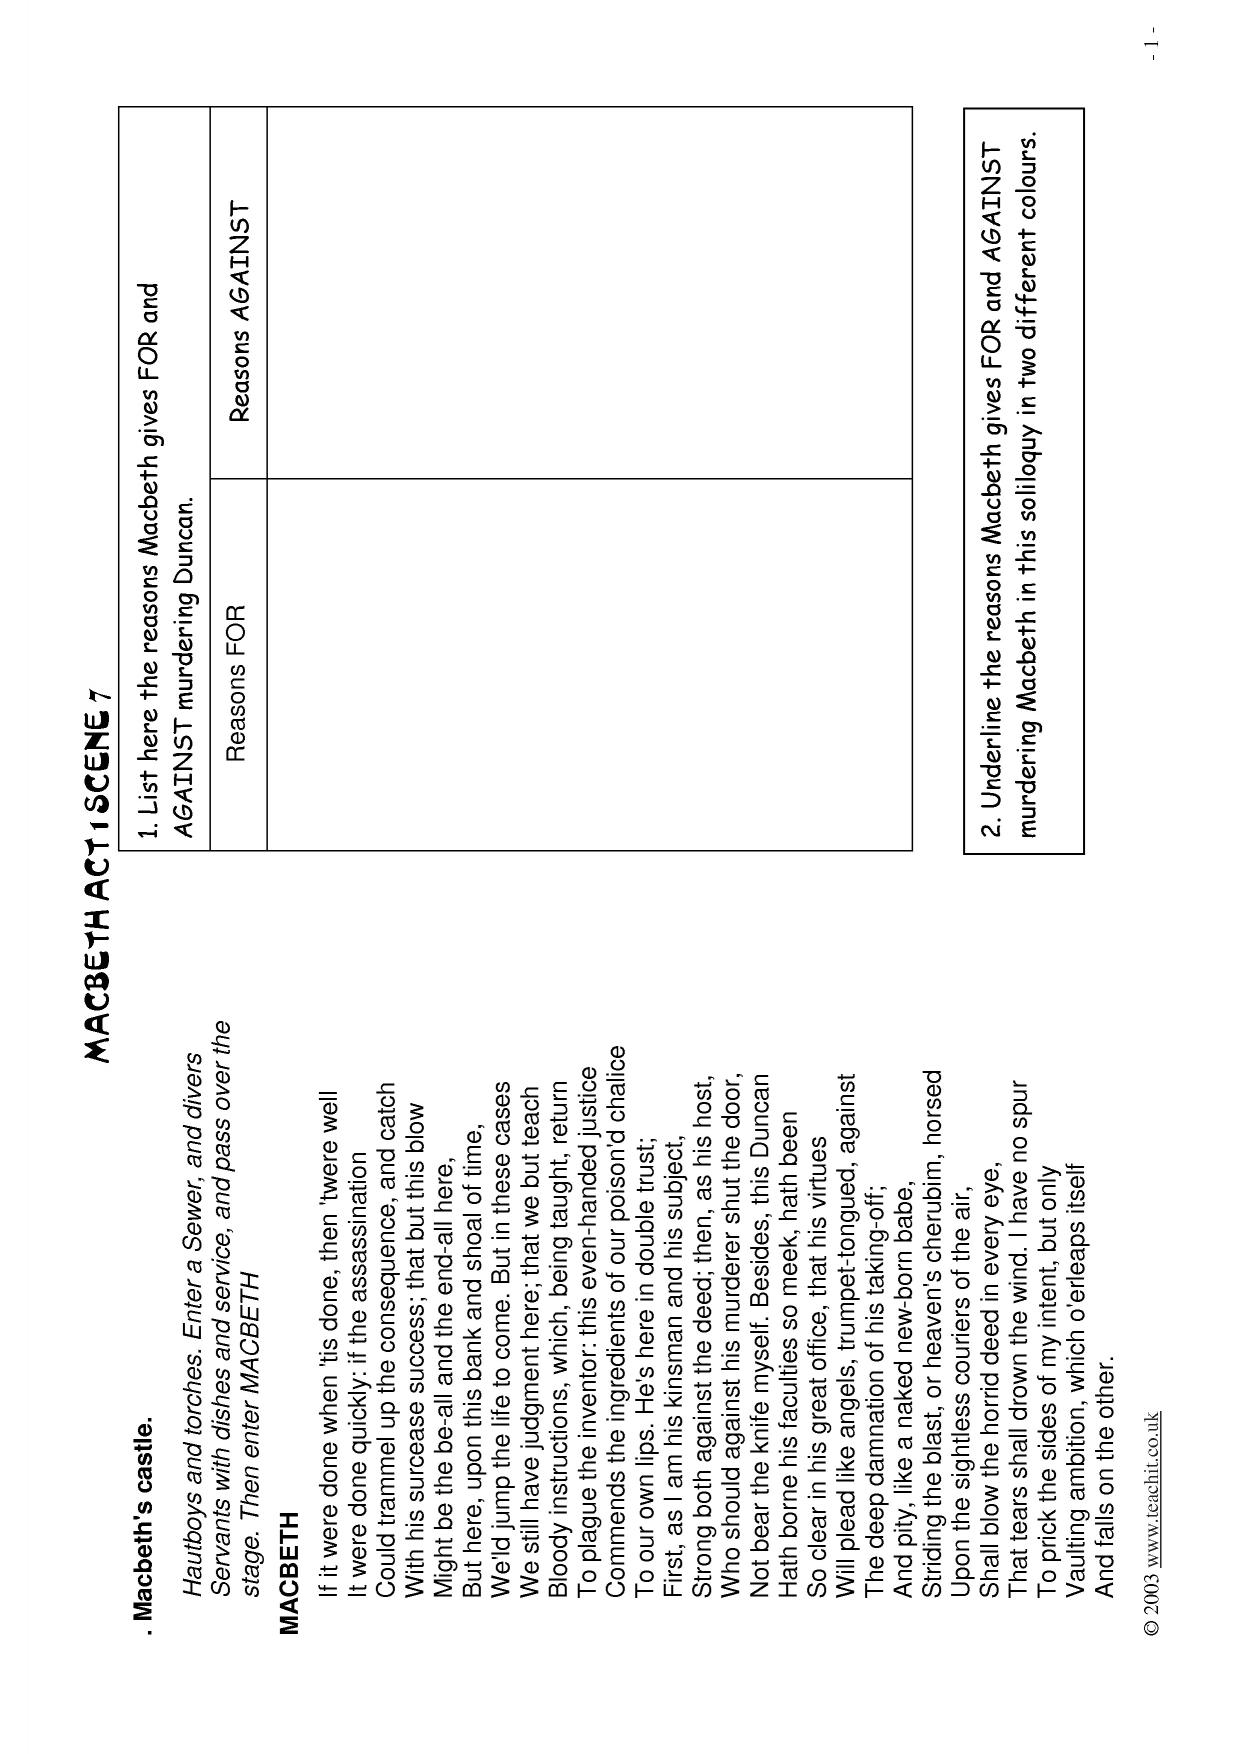 ragan macbeth 1000 word essay The result is the essence of macbeth the words are treated sensorily 1000+ essay samples pro writing tips download need help ask an expert for free.